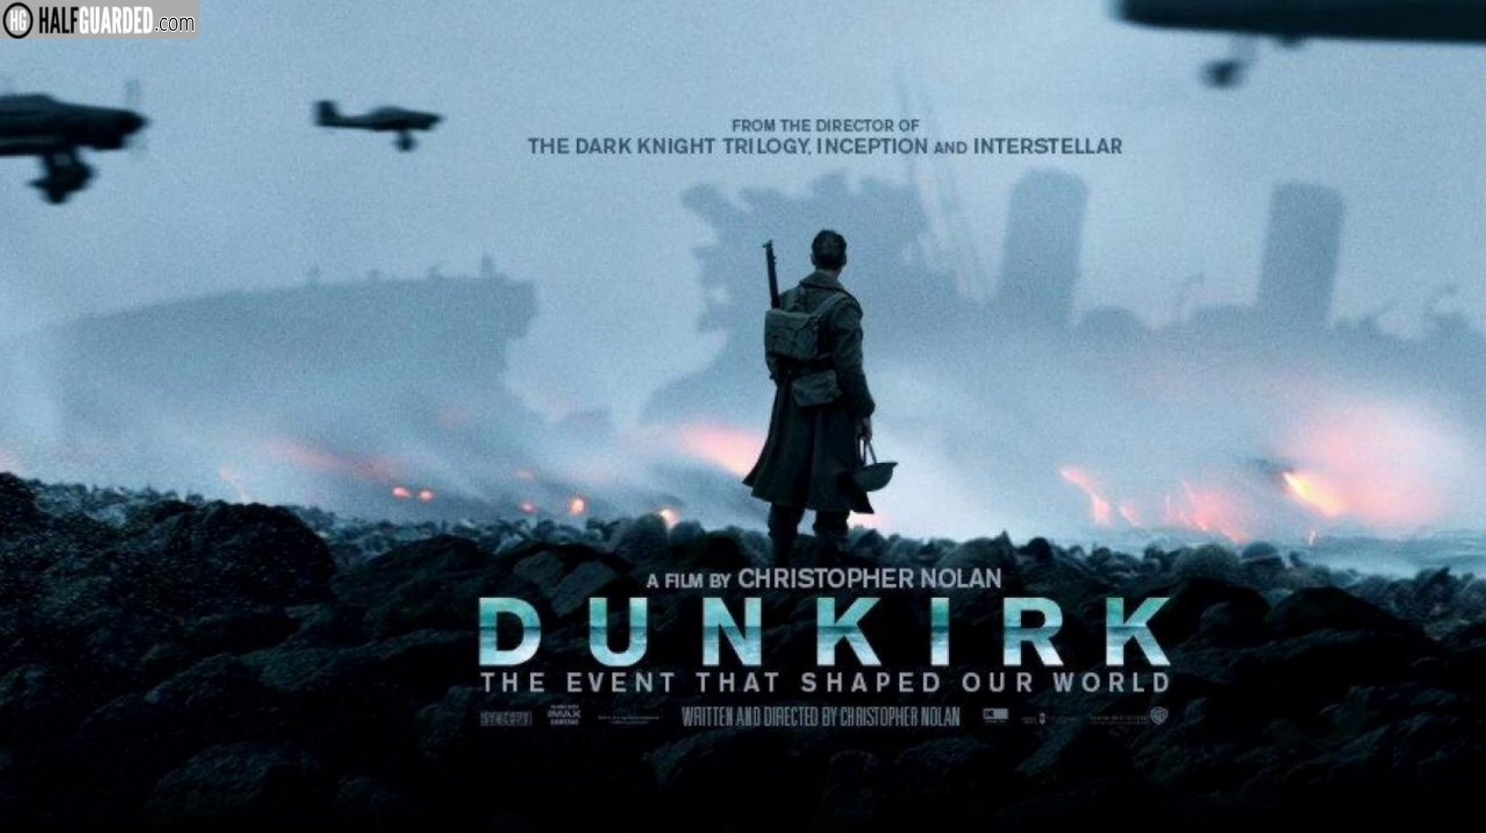 MIKE'S OFFICIAL DUNKIRK REVIEW